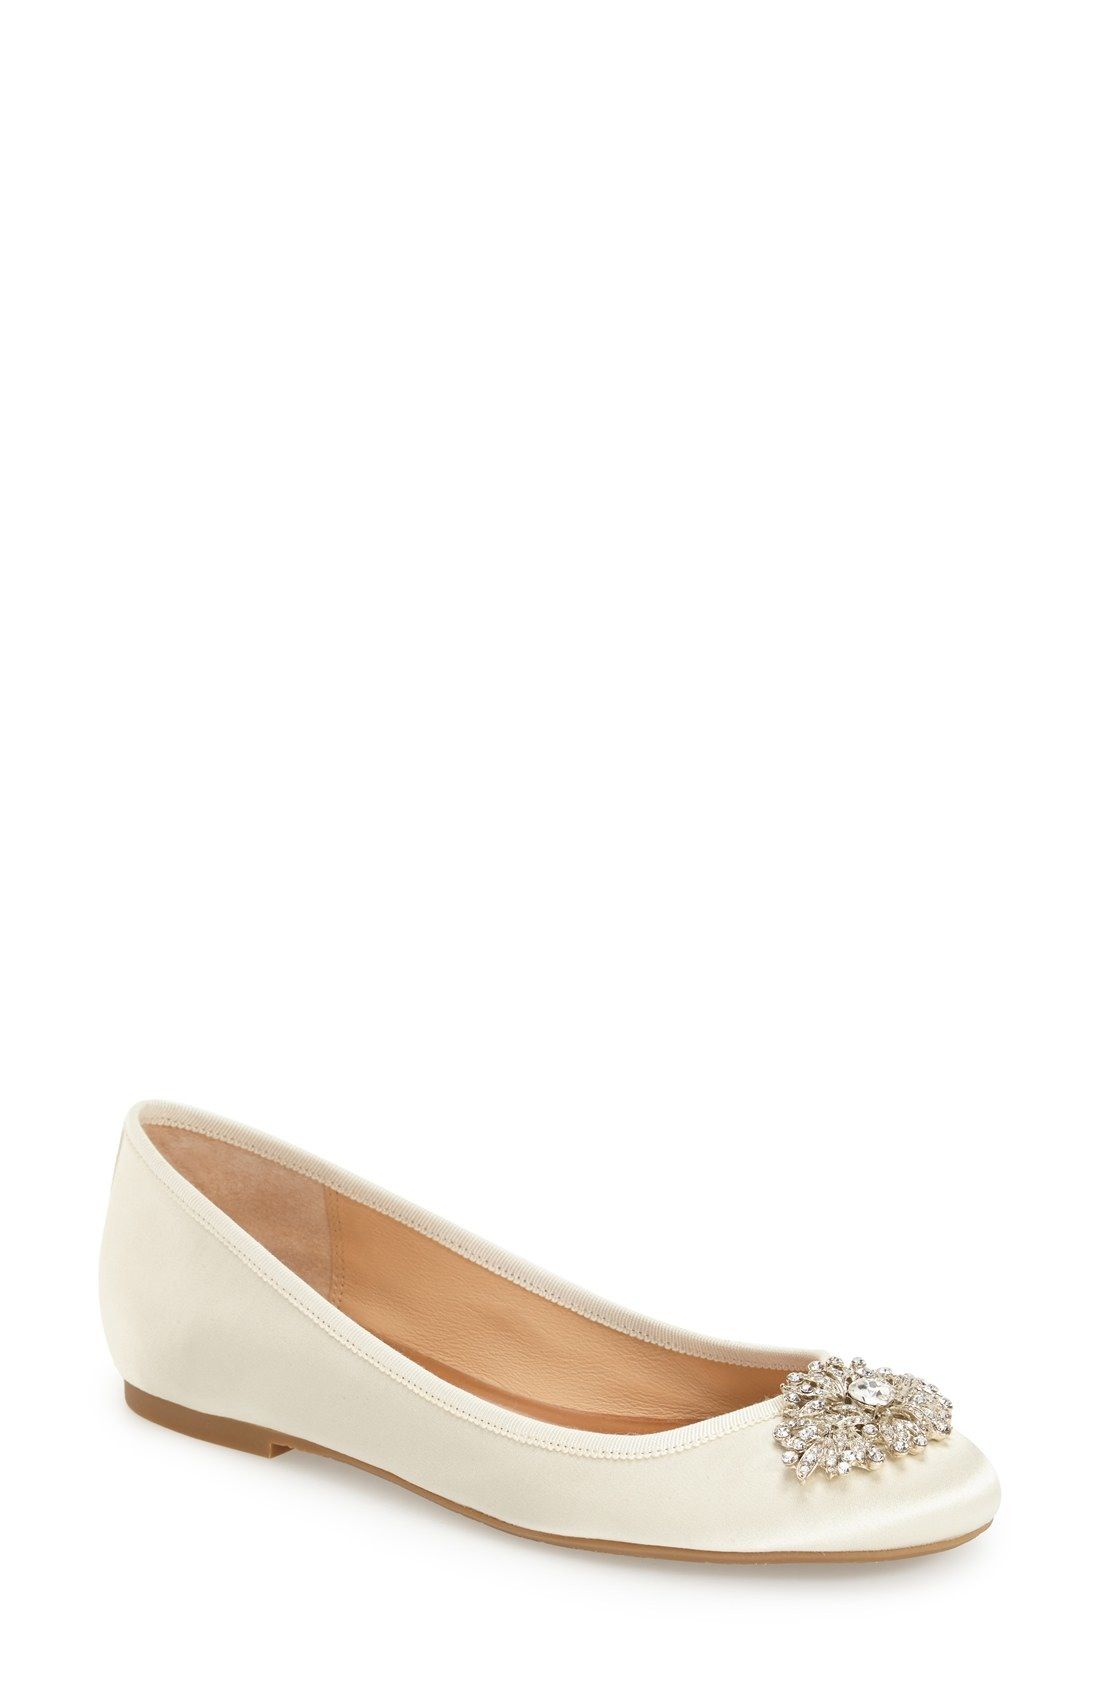 02e7df4c516 Badgley Mischka  Abella  Embellished Flat (Women) available at  Nordstrom